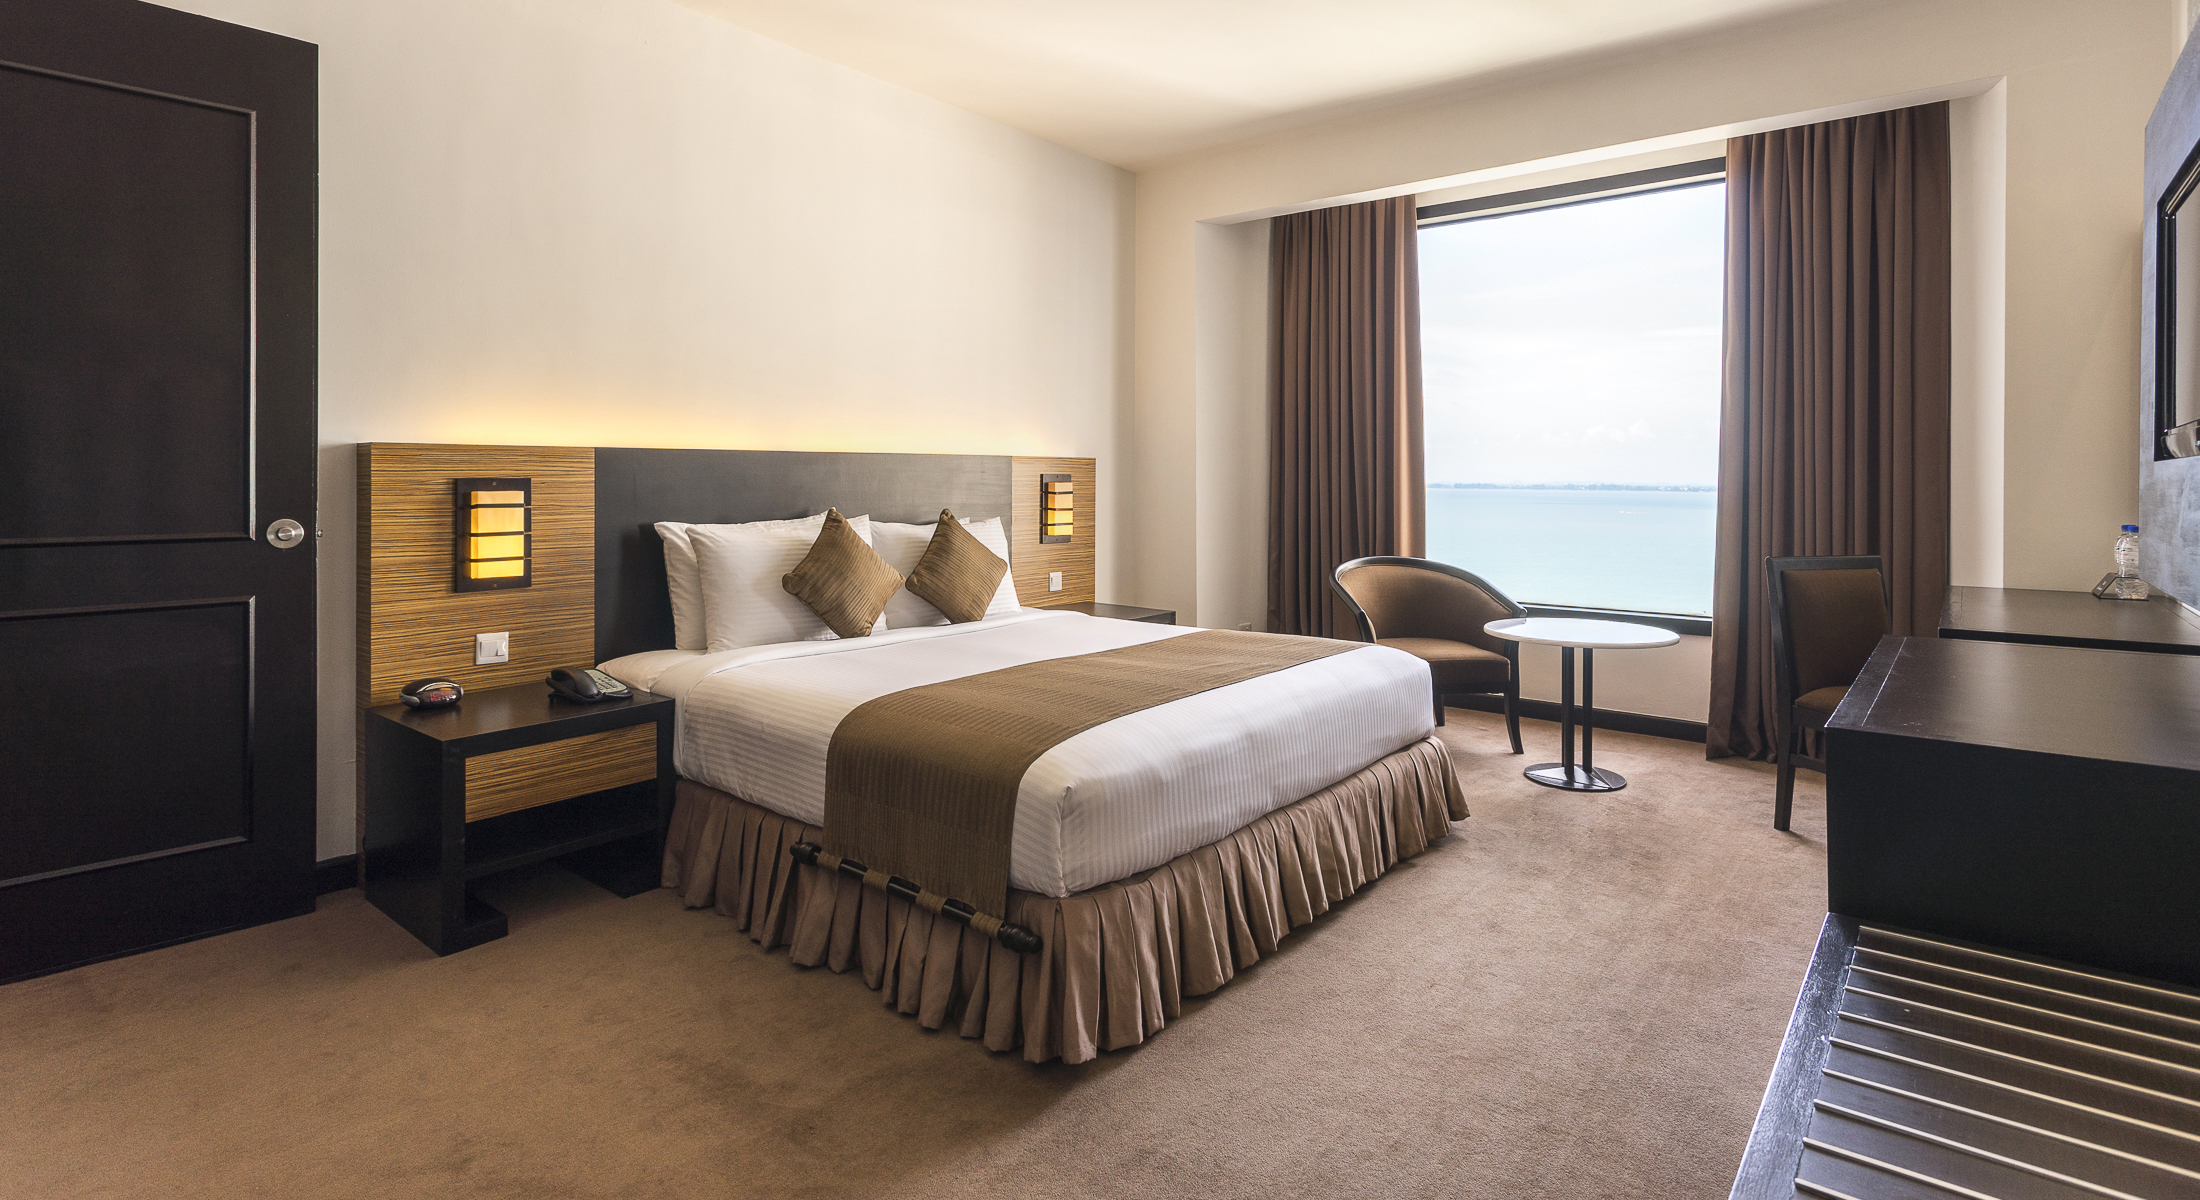 Rooms Amp Suites Suite Room Penang Hotel Bayview Hotel